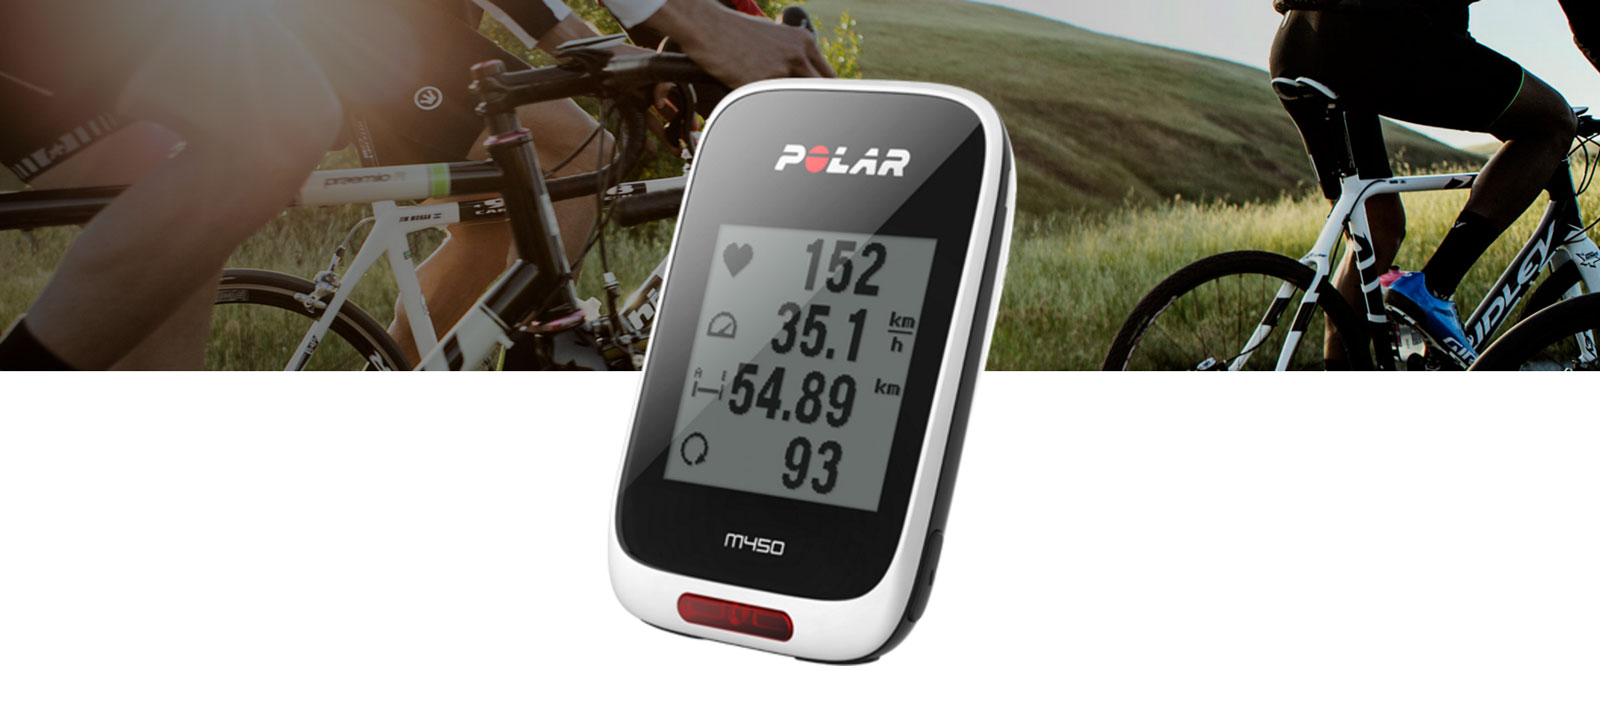 POLAR M450 HR SPECIAL EDITION